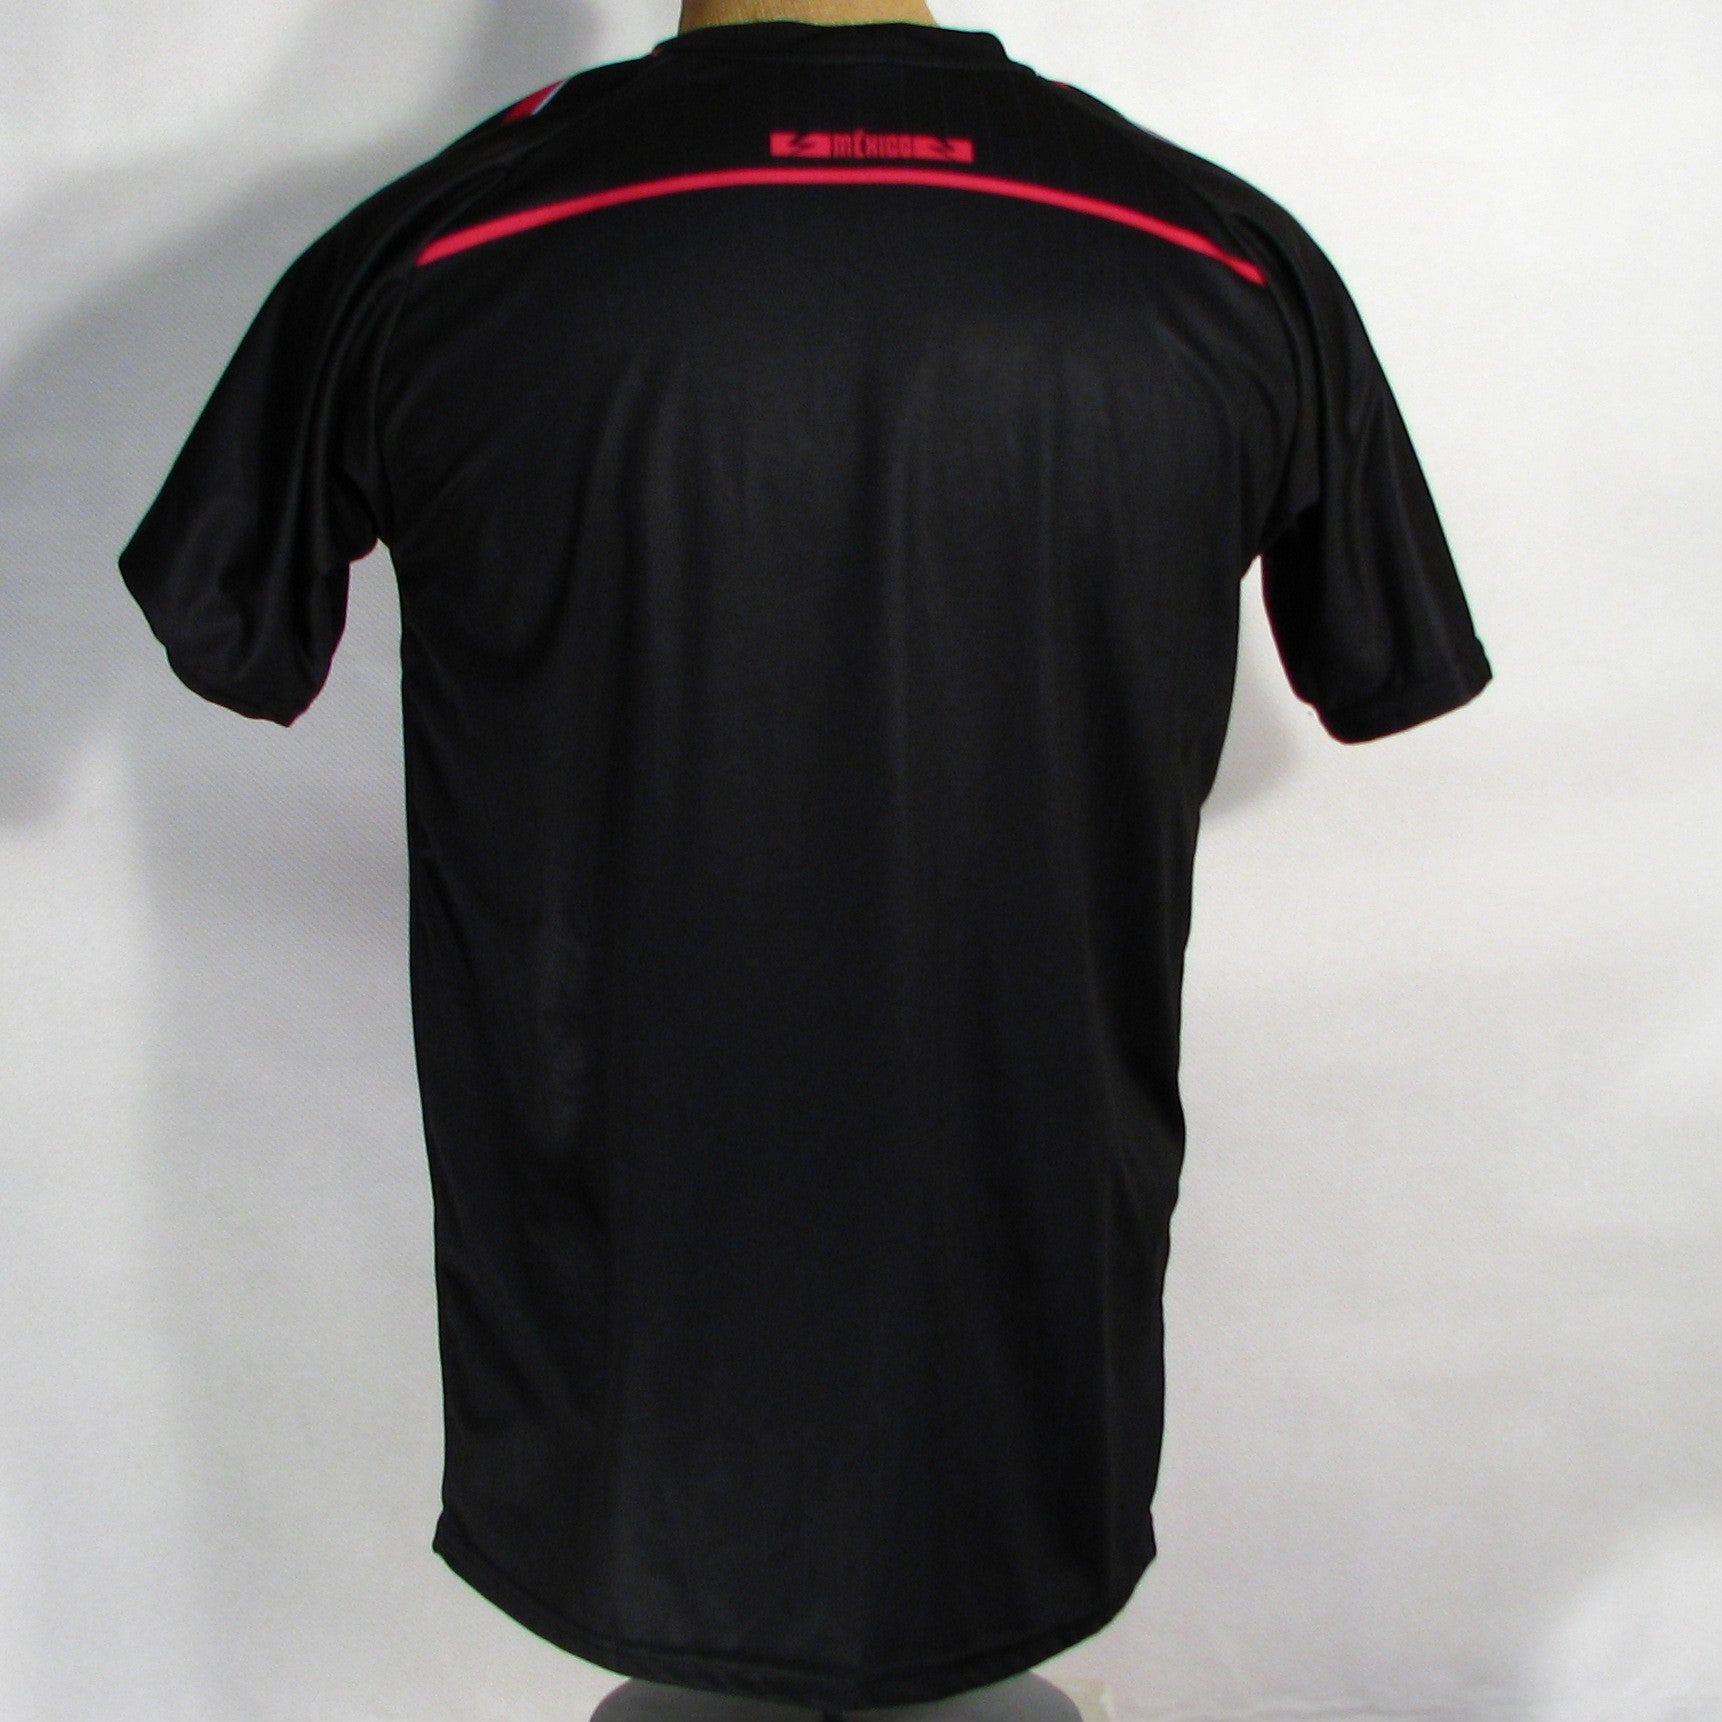 Mexican Federation Soccer Jersey